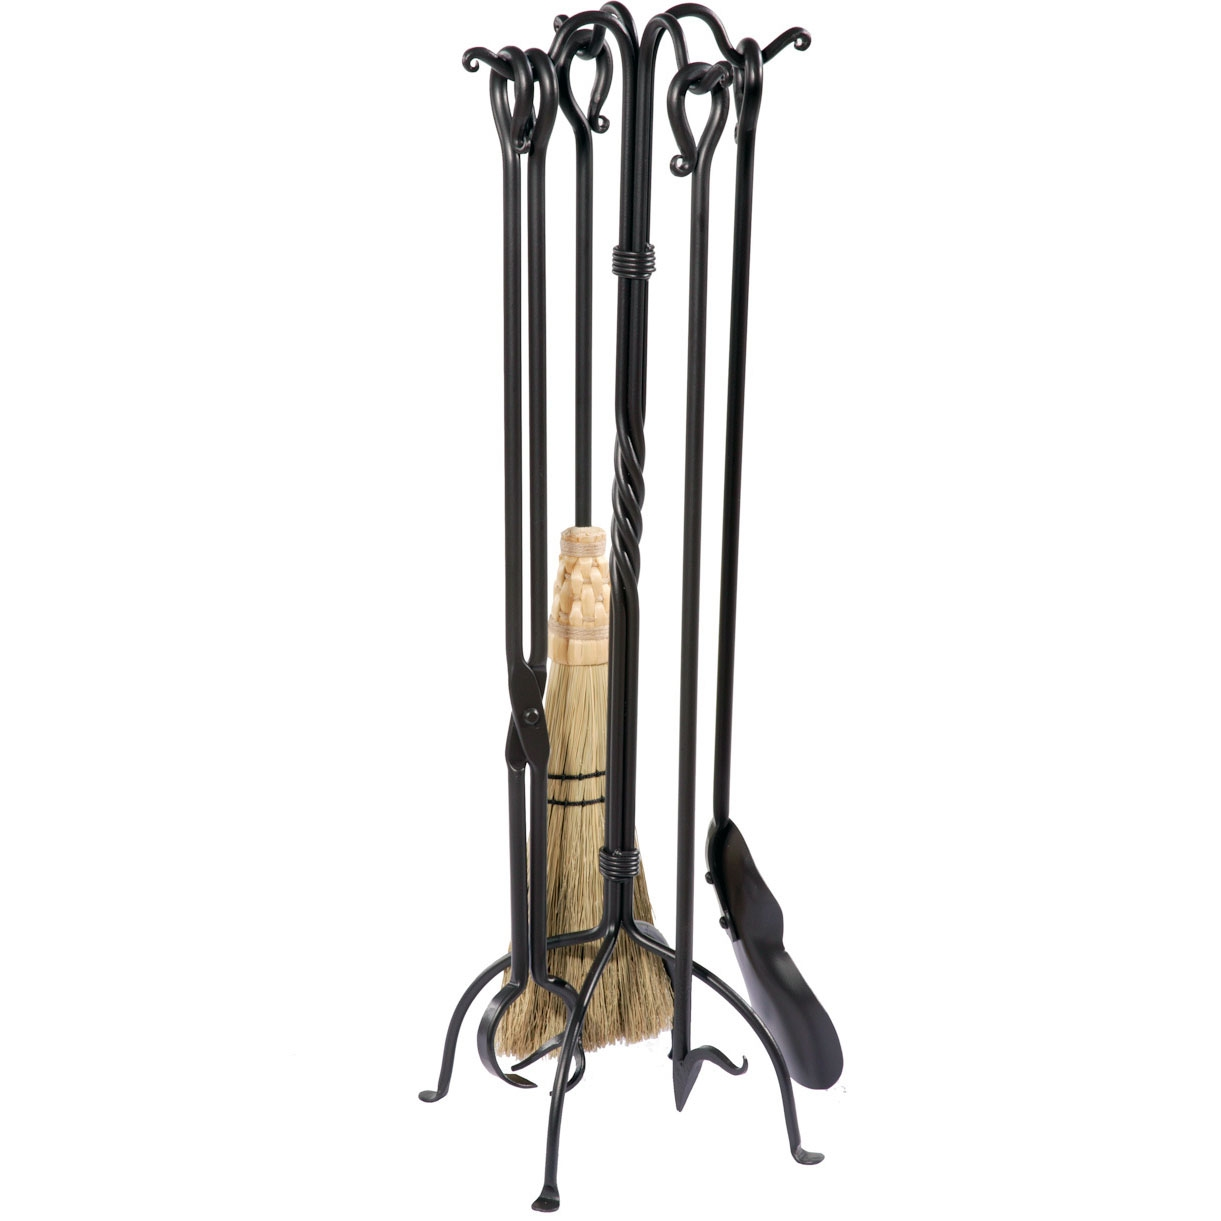 Beautiful wrought iron fireplace tools pine firelace tool for your home interior tool improvements